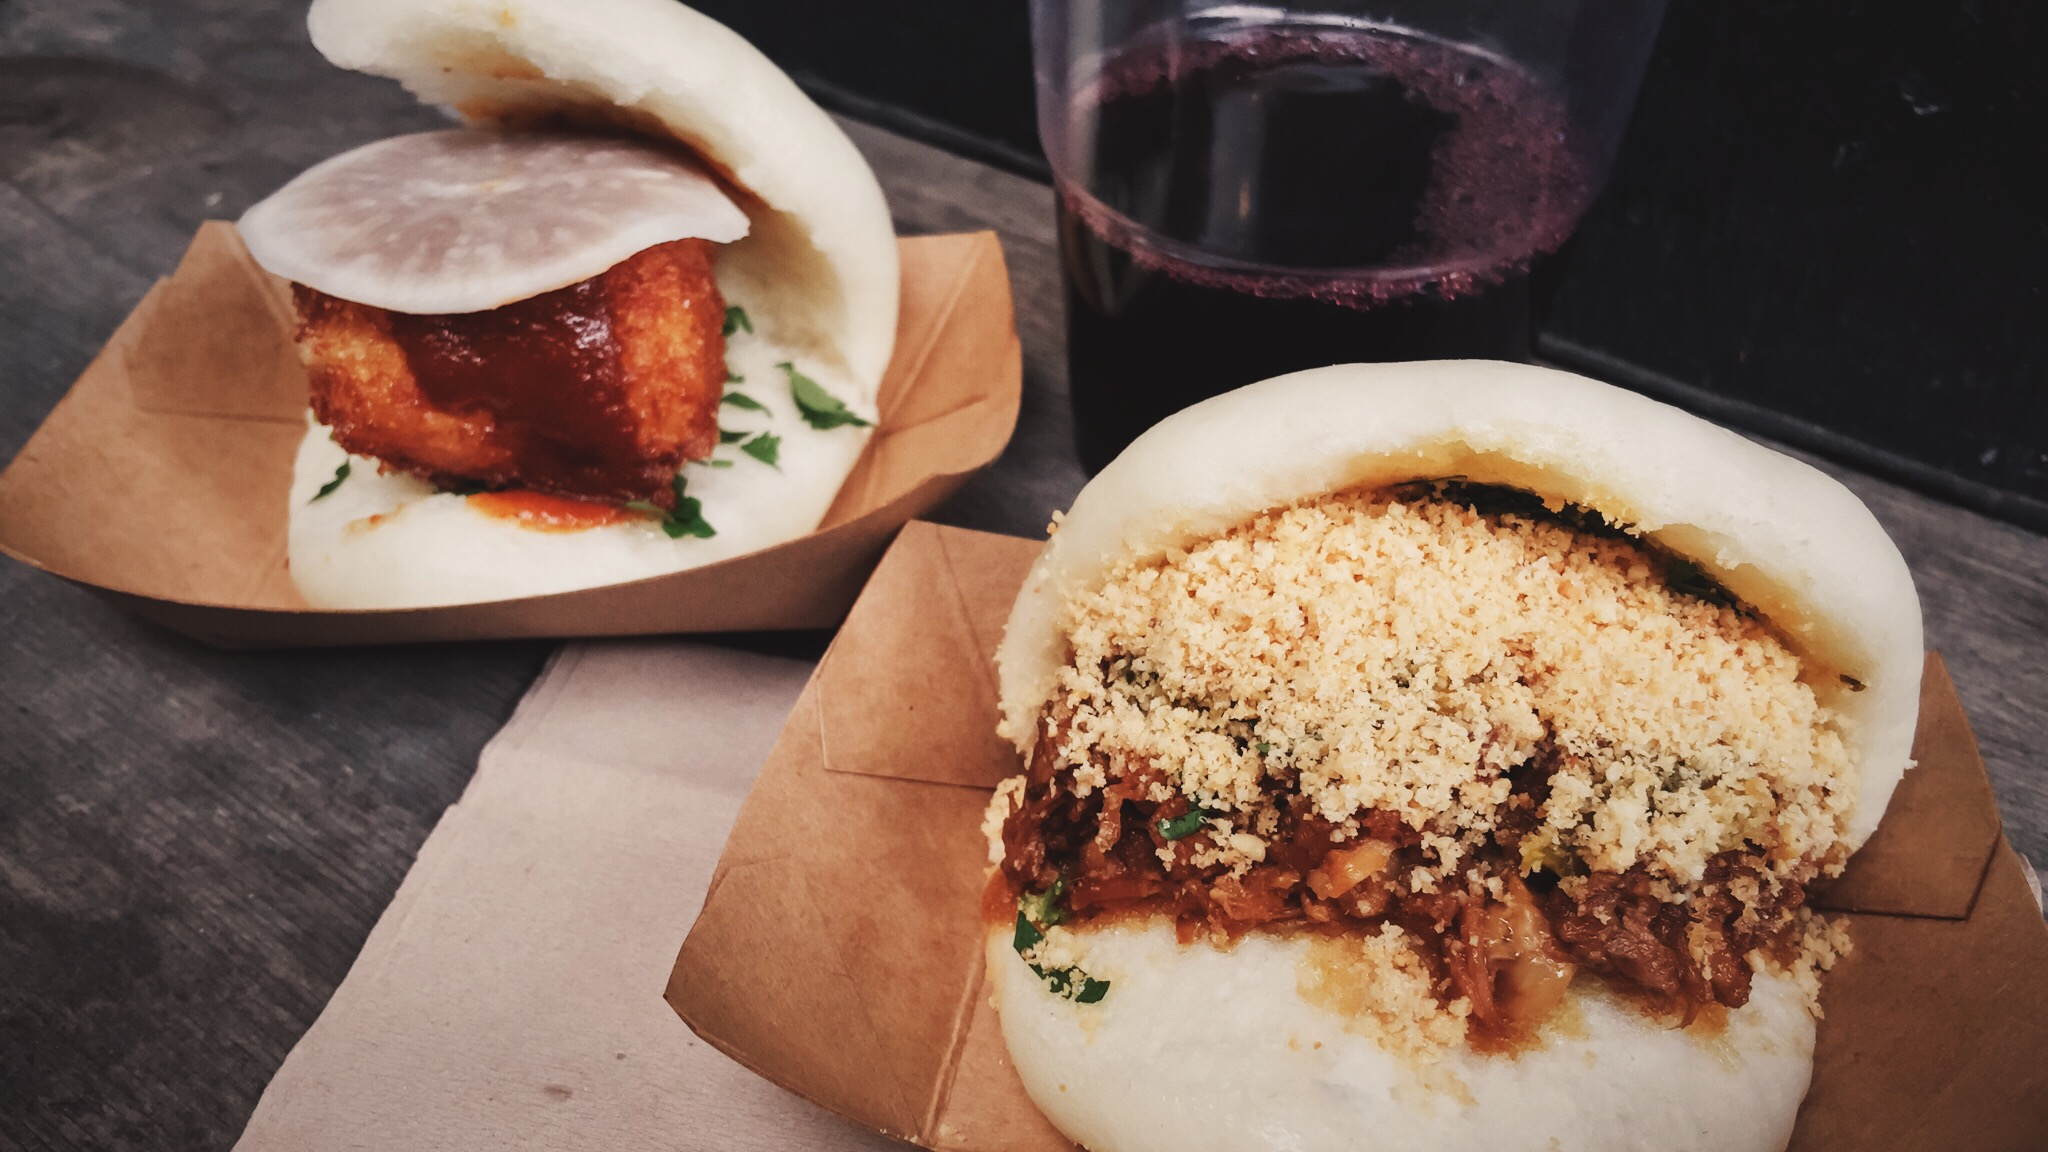 Classic and Daikon Bao at Bao